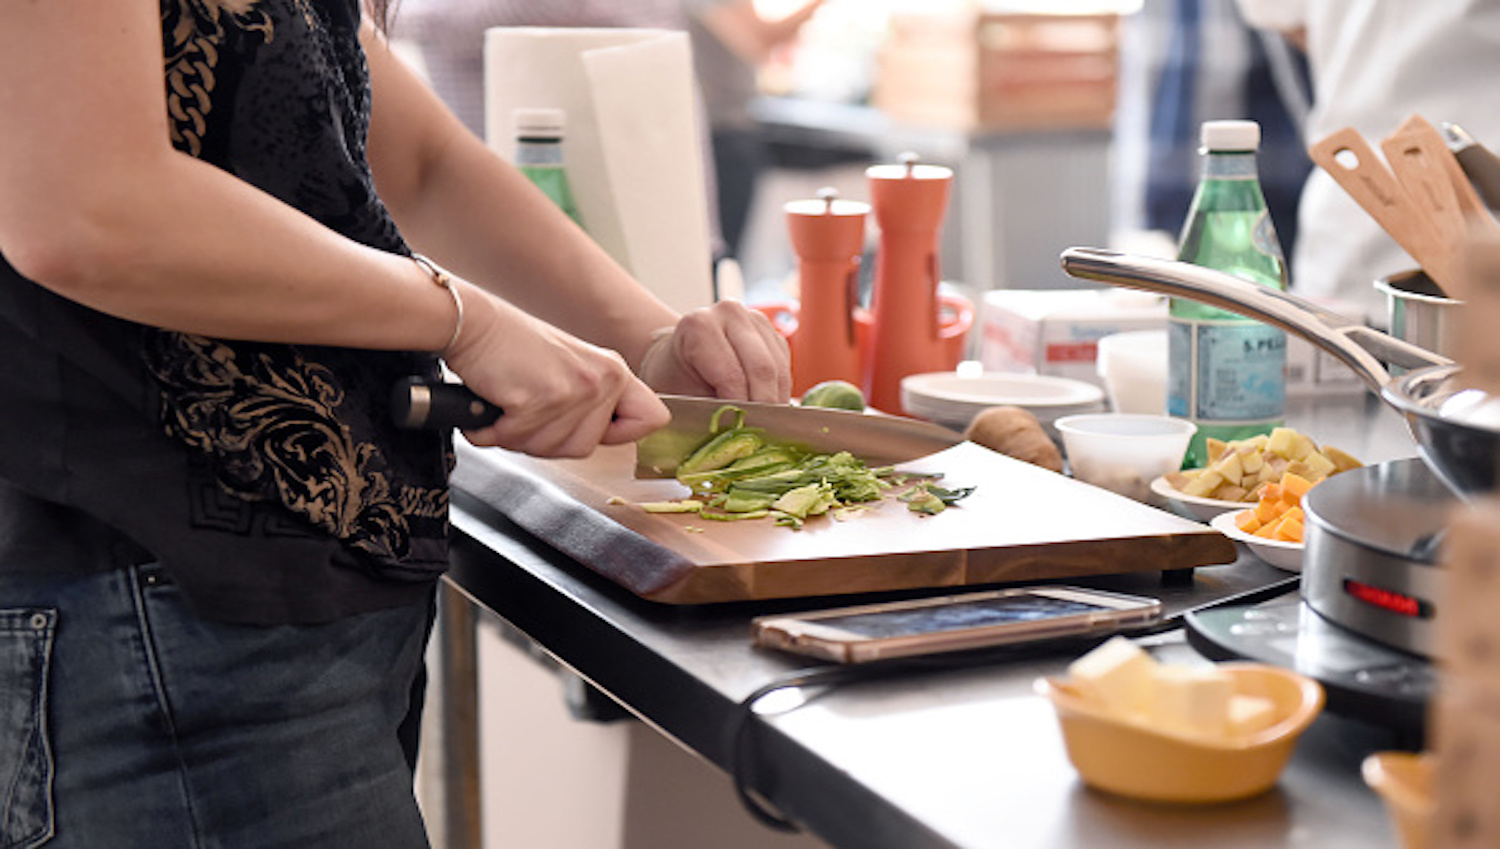 California home cooking law